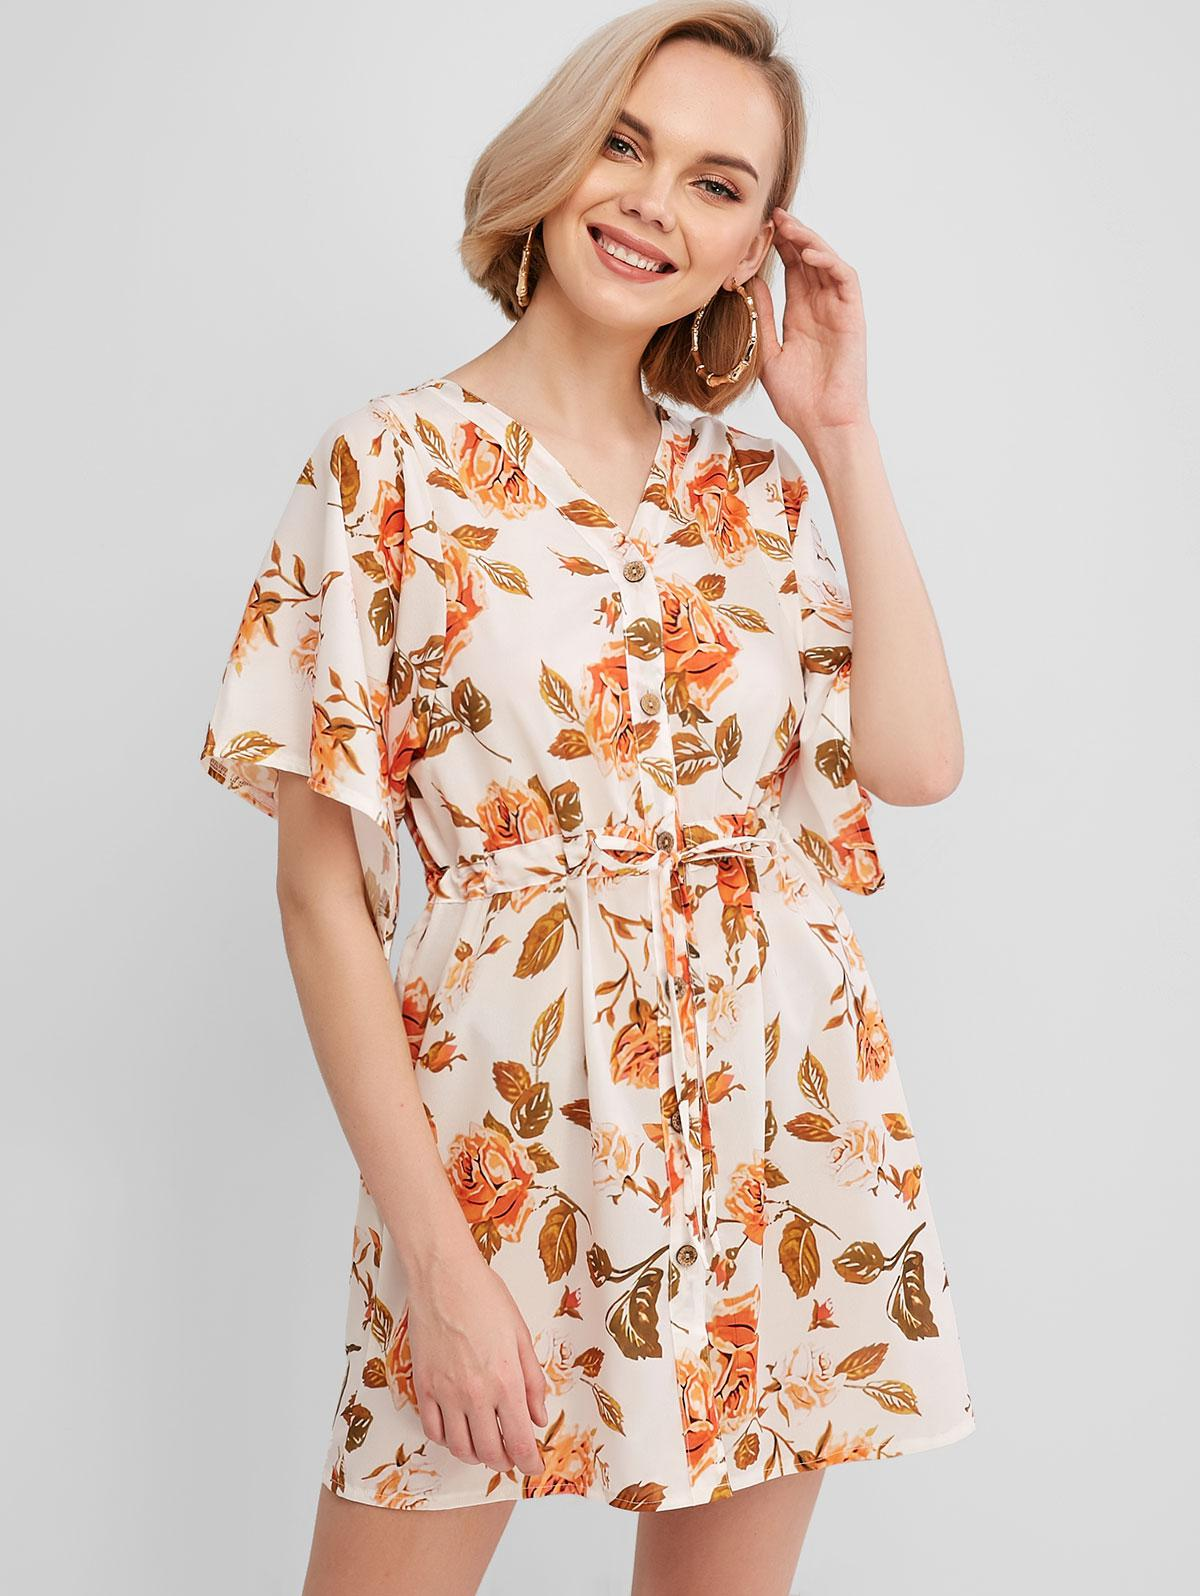 Drawstring Waist Floral Button Up Mini Dress